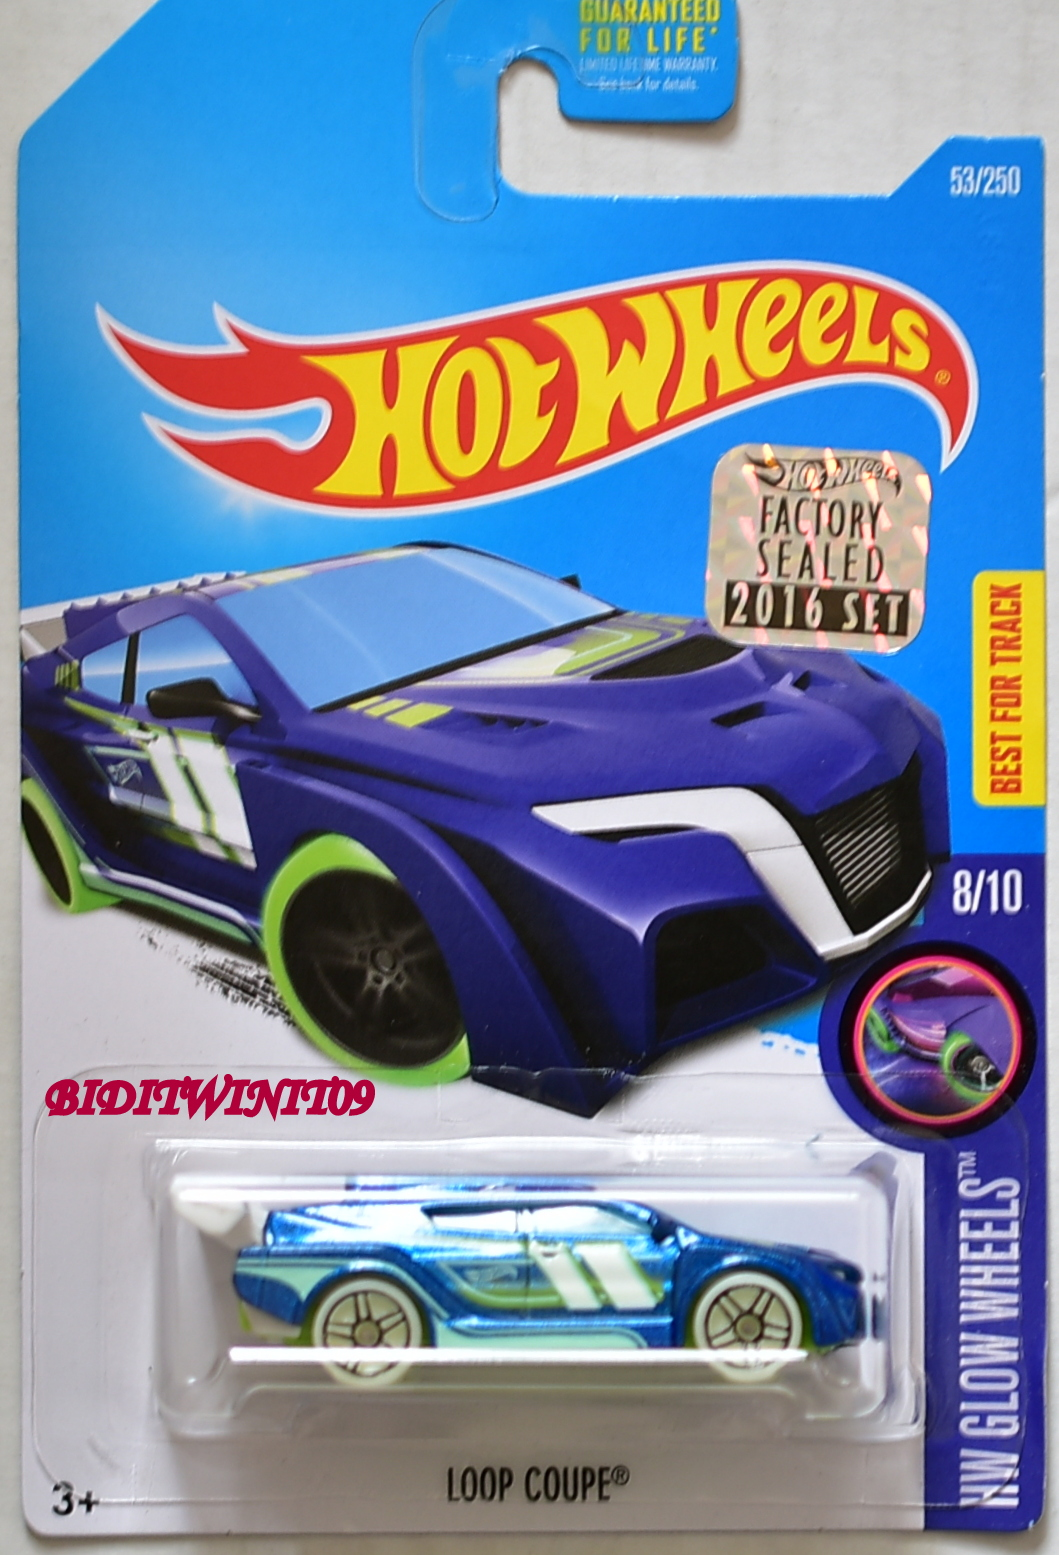 HOT WHEELS 2016 HW GLOW WHEELS LOOP COUPE BLUE FACTORY SEALED